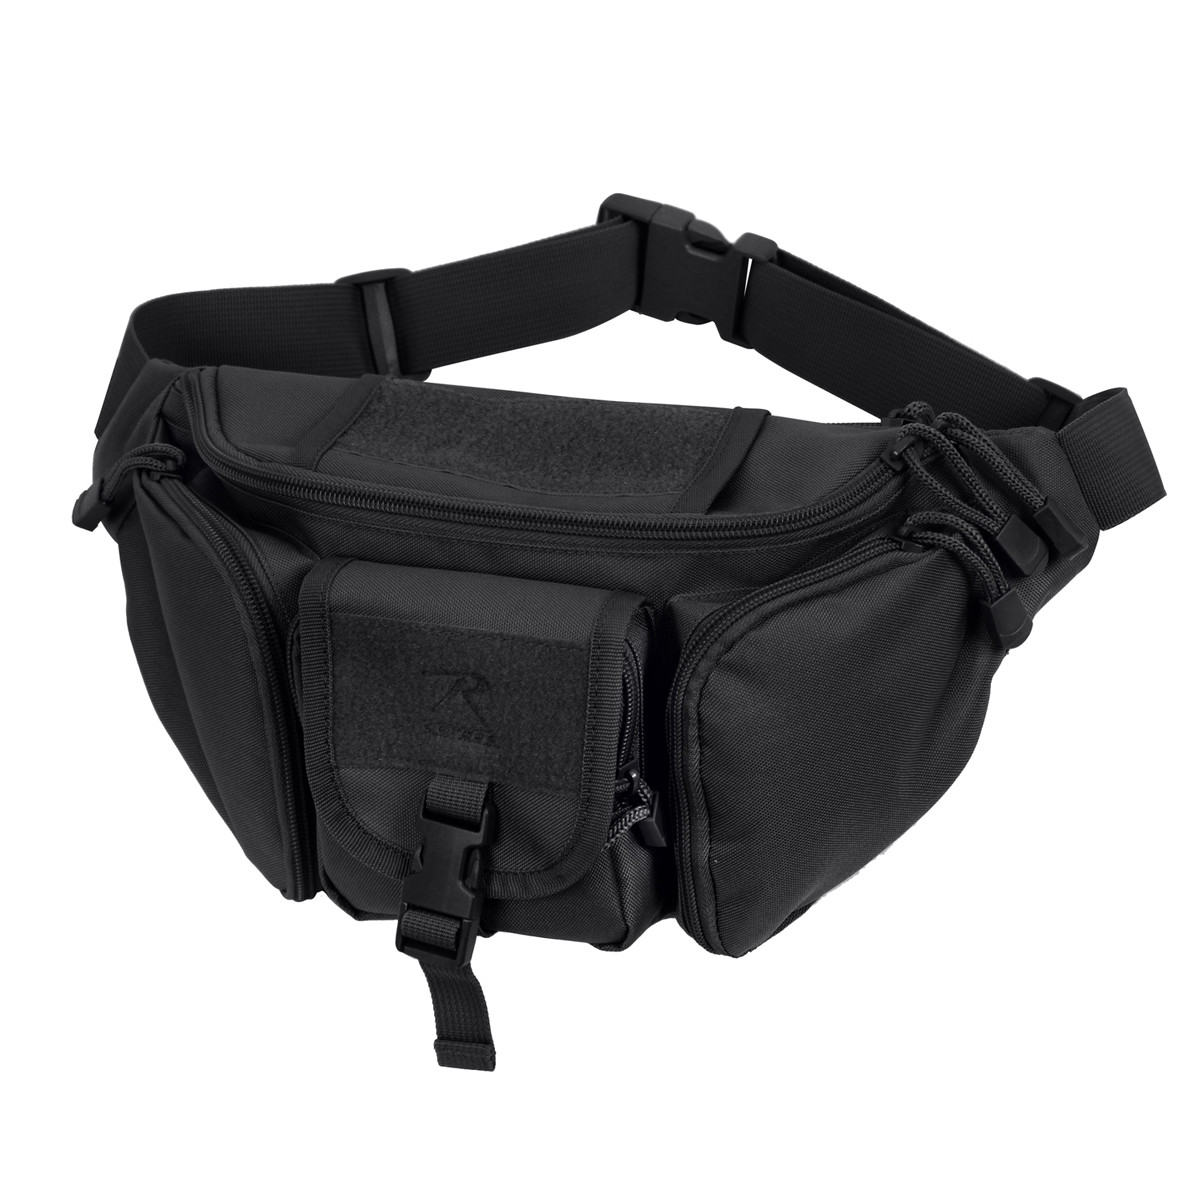 Shop Tactical Concealed Carry Fanny Pack - Fatigues Army Navy 1e90971ba